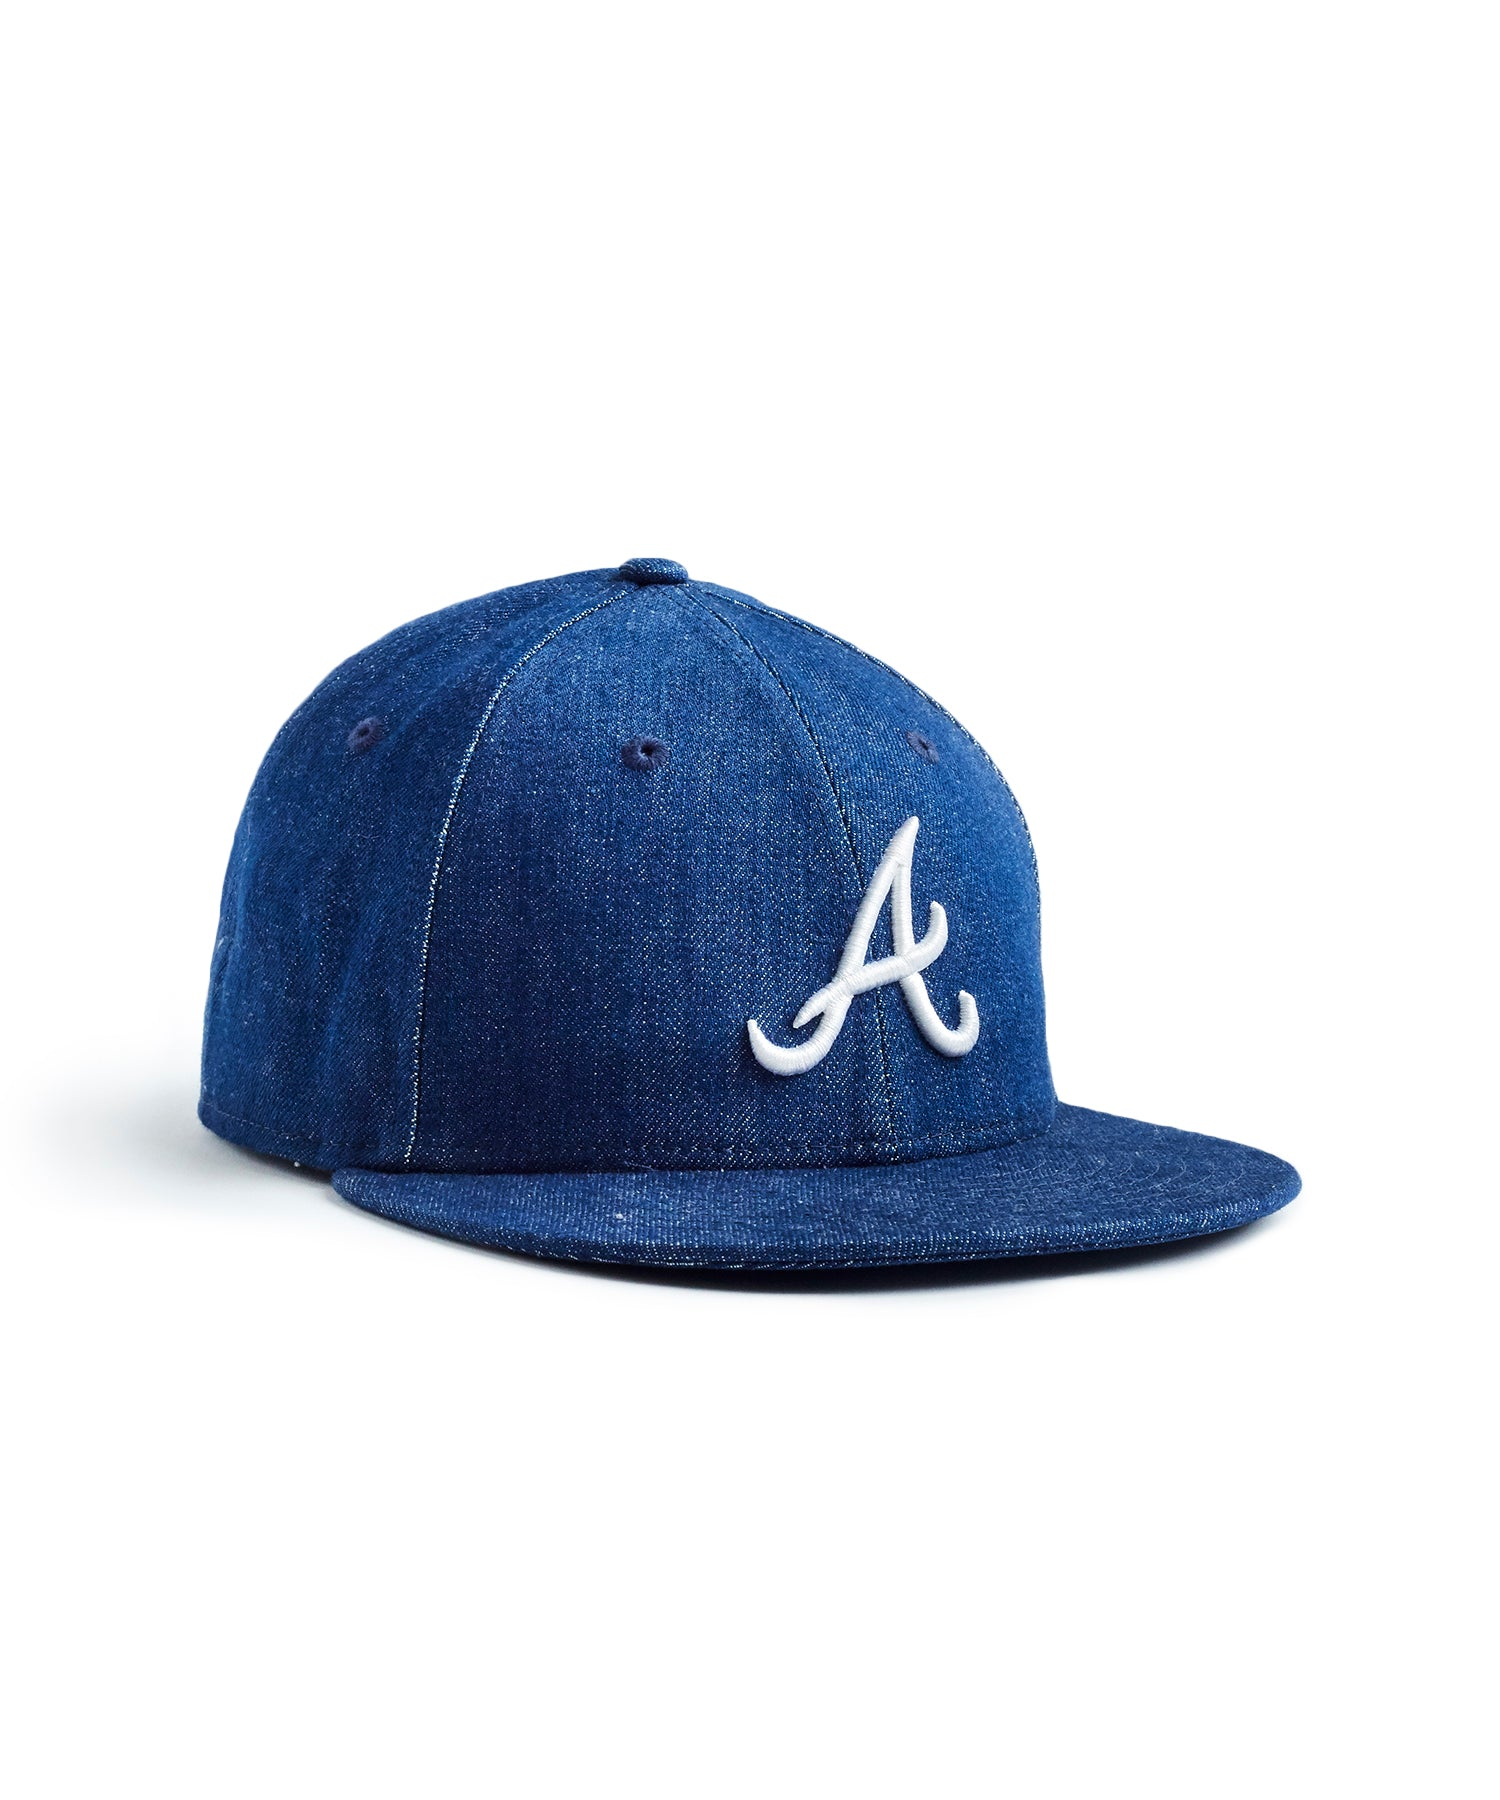 TODD SNYDER + NEW ERA MLB ATLANTA BRAVES CAP IN CONE DENIM